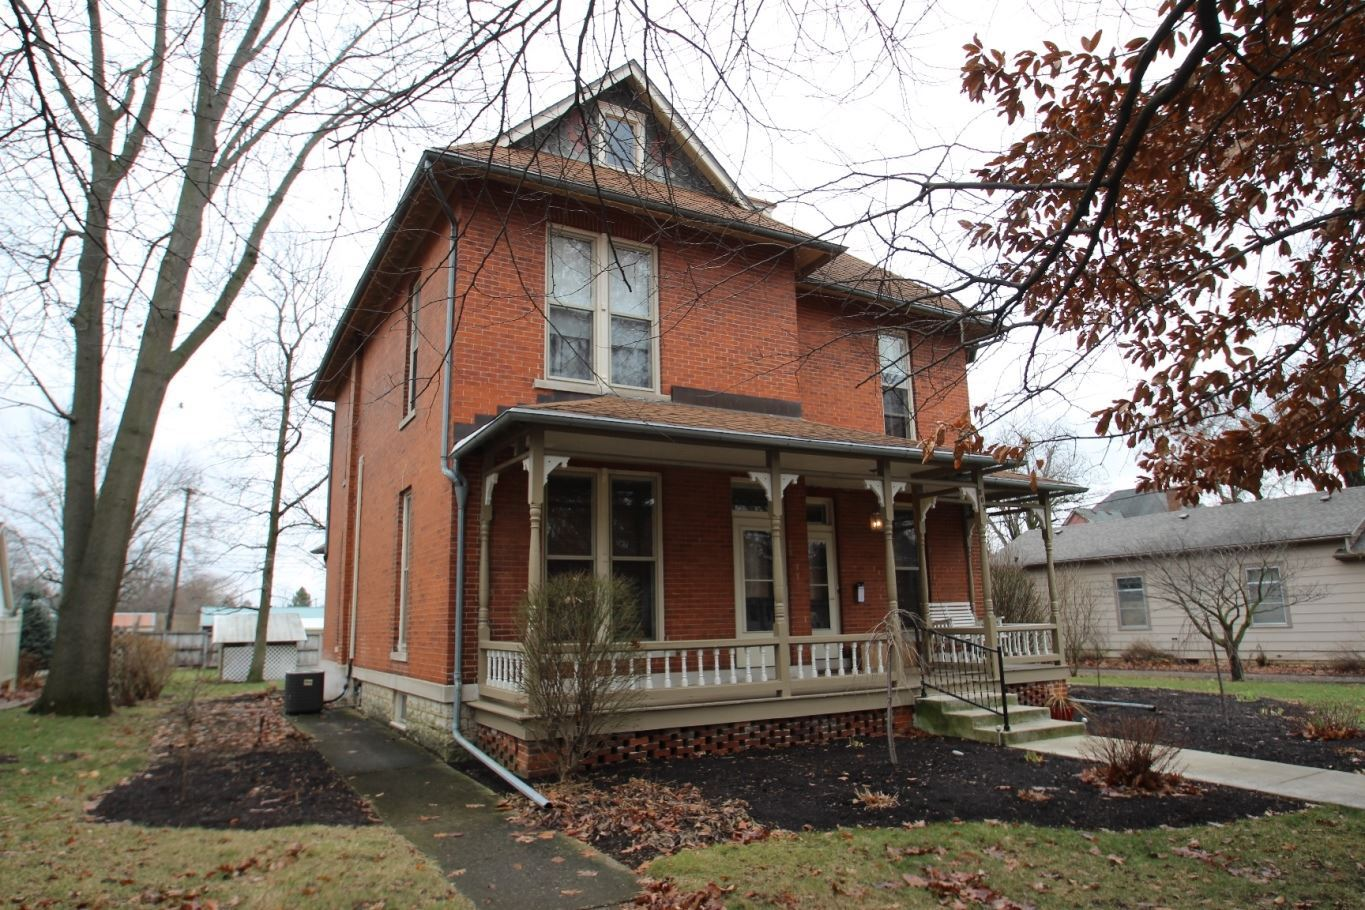 Photo of 207 N Market Street, North Manchester, IN 46962 (MLS # 202001426)